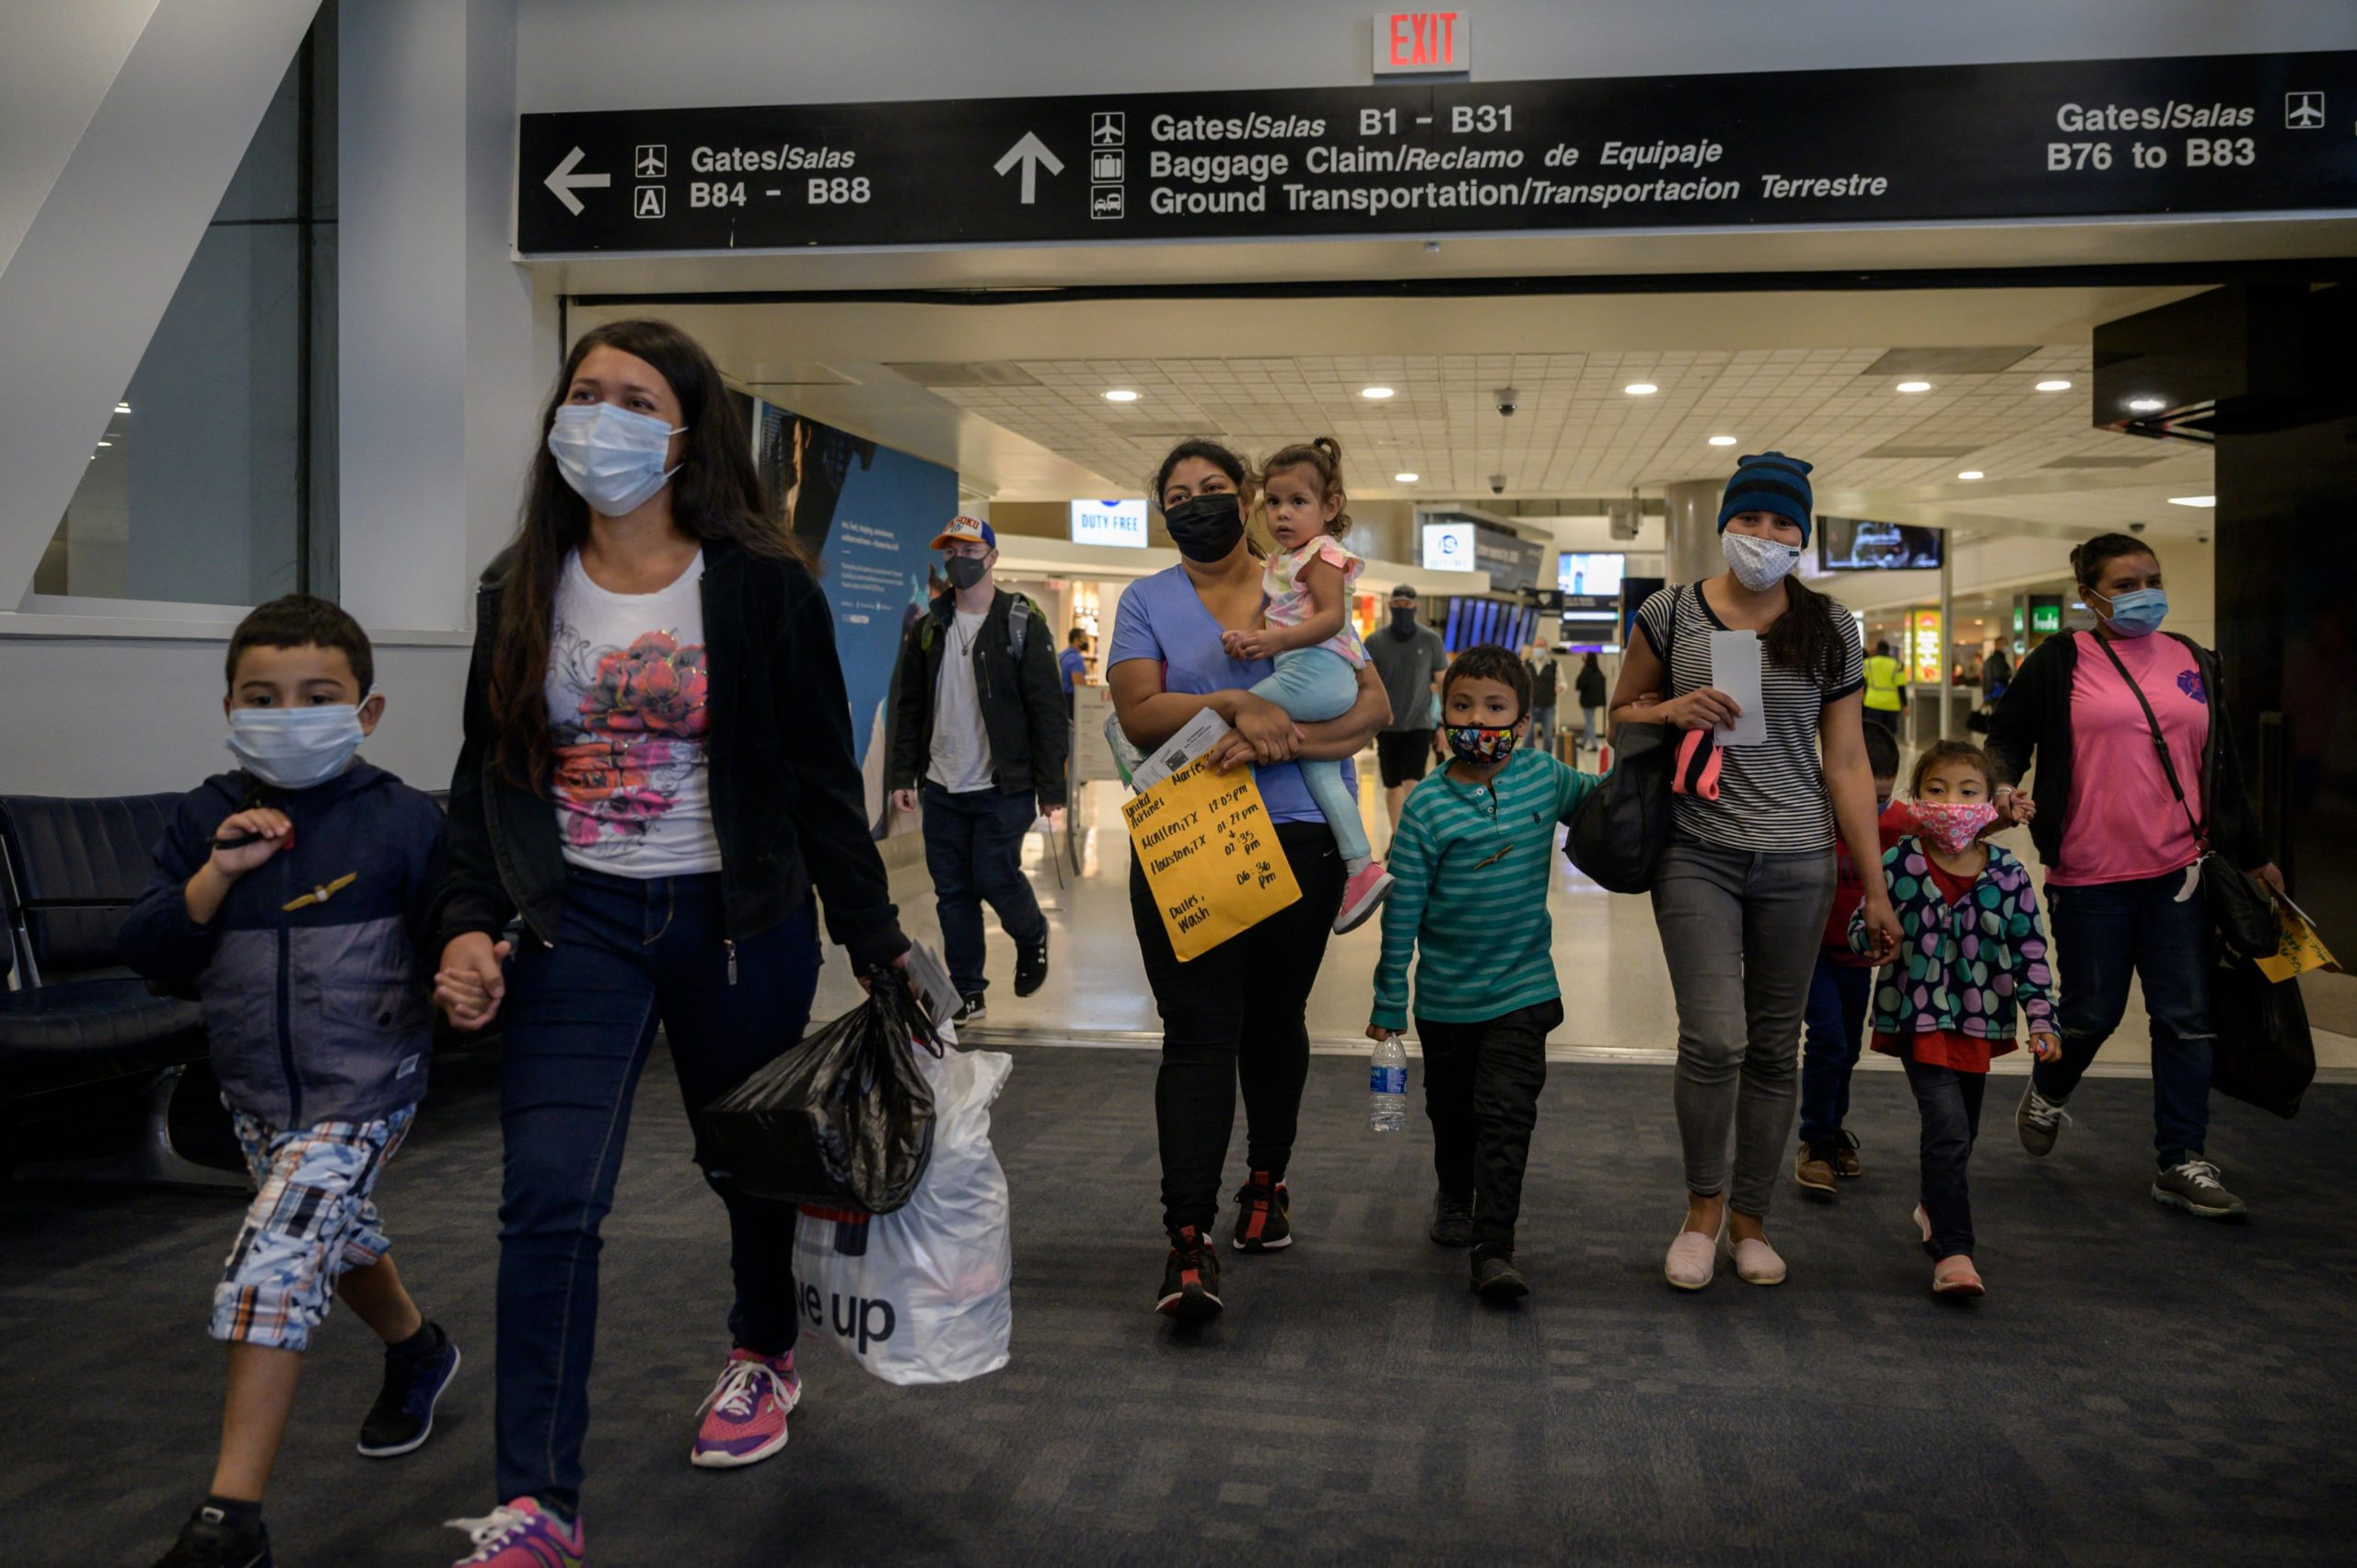 Dania (2nd L) and her son Daniel (L) from Honduras walk with mother Reina (3rd R) and her children Diana (2nd R) and Dariel (4th R) from El Salvador, through Houston airport during a transfer on March 30, 2021. (Photo by ED JONES/AFP via Getty Images)